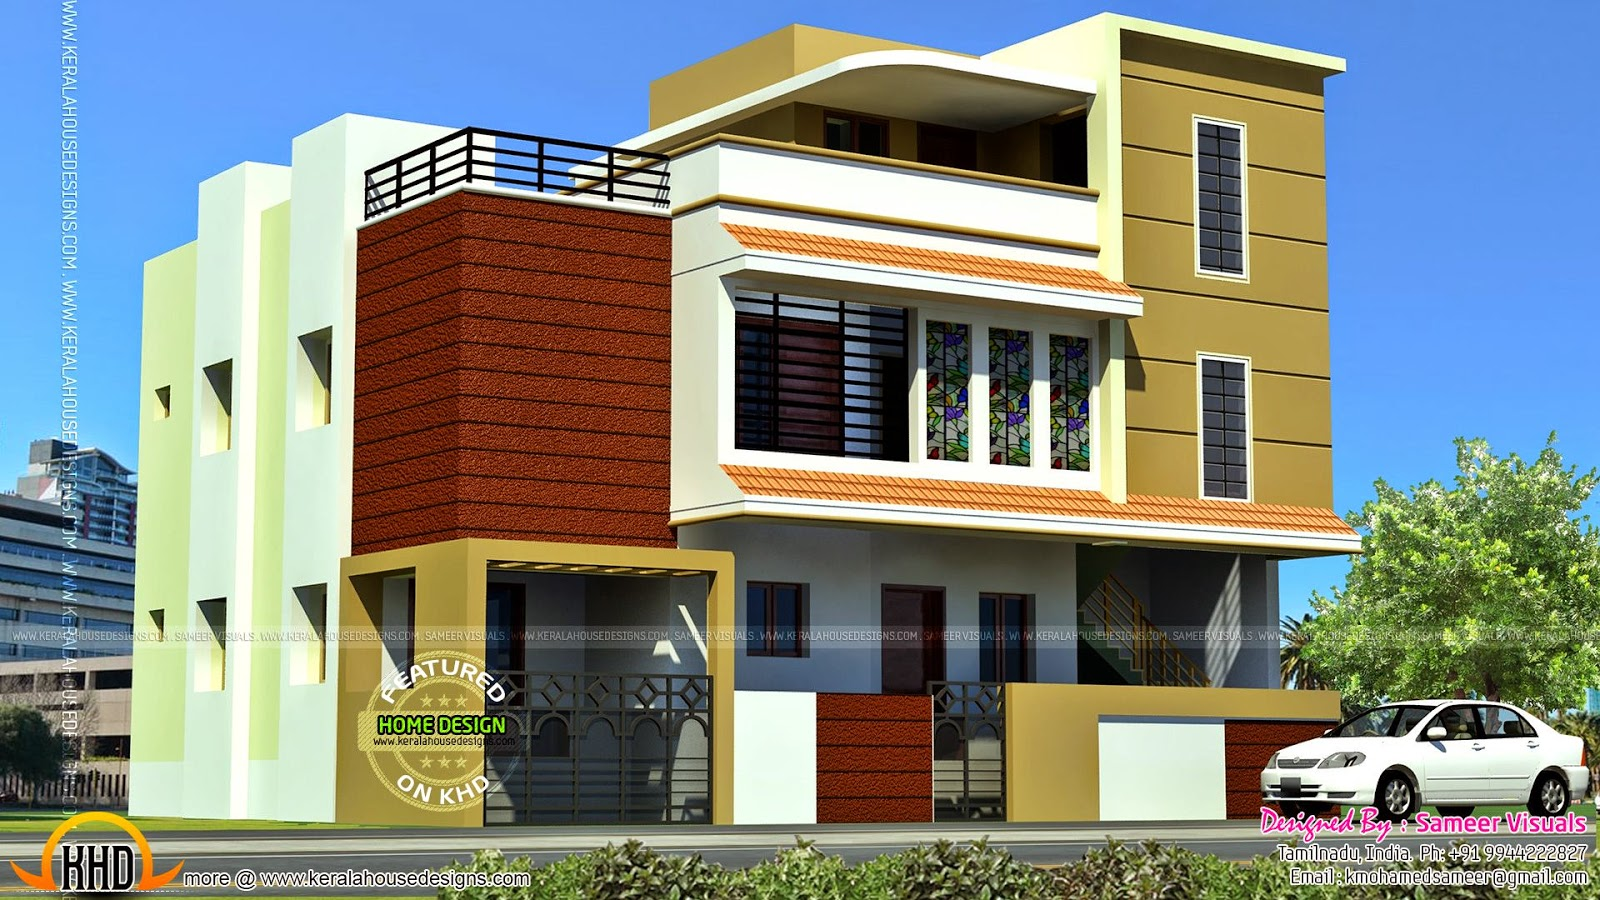 tamilnadu model house kerala home design and floor plans ForTamilnadu House Models